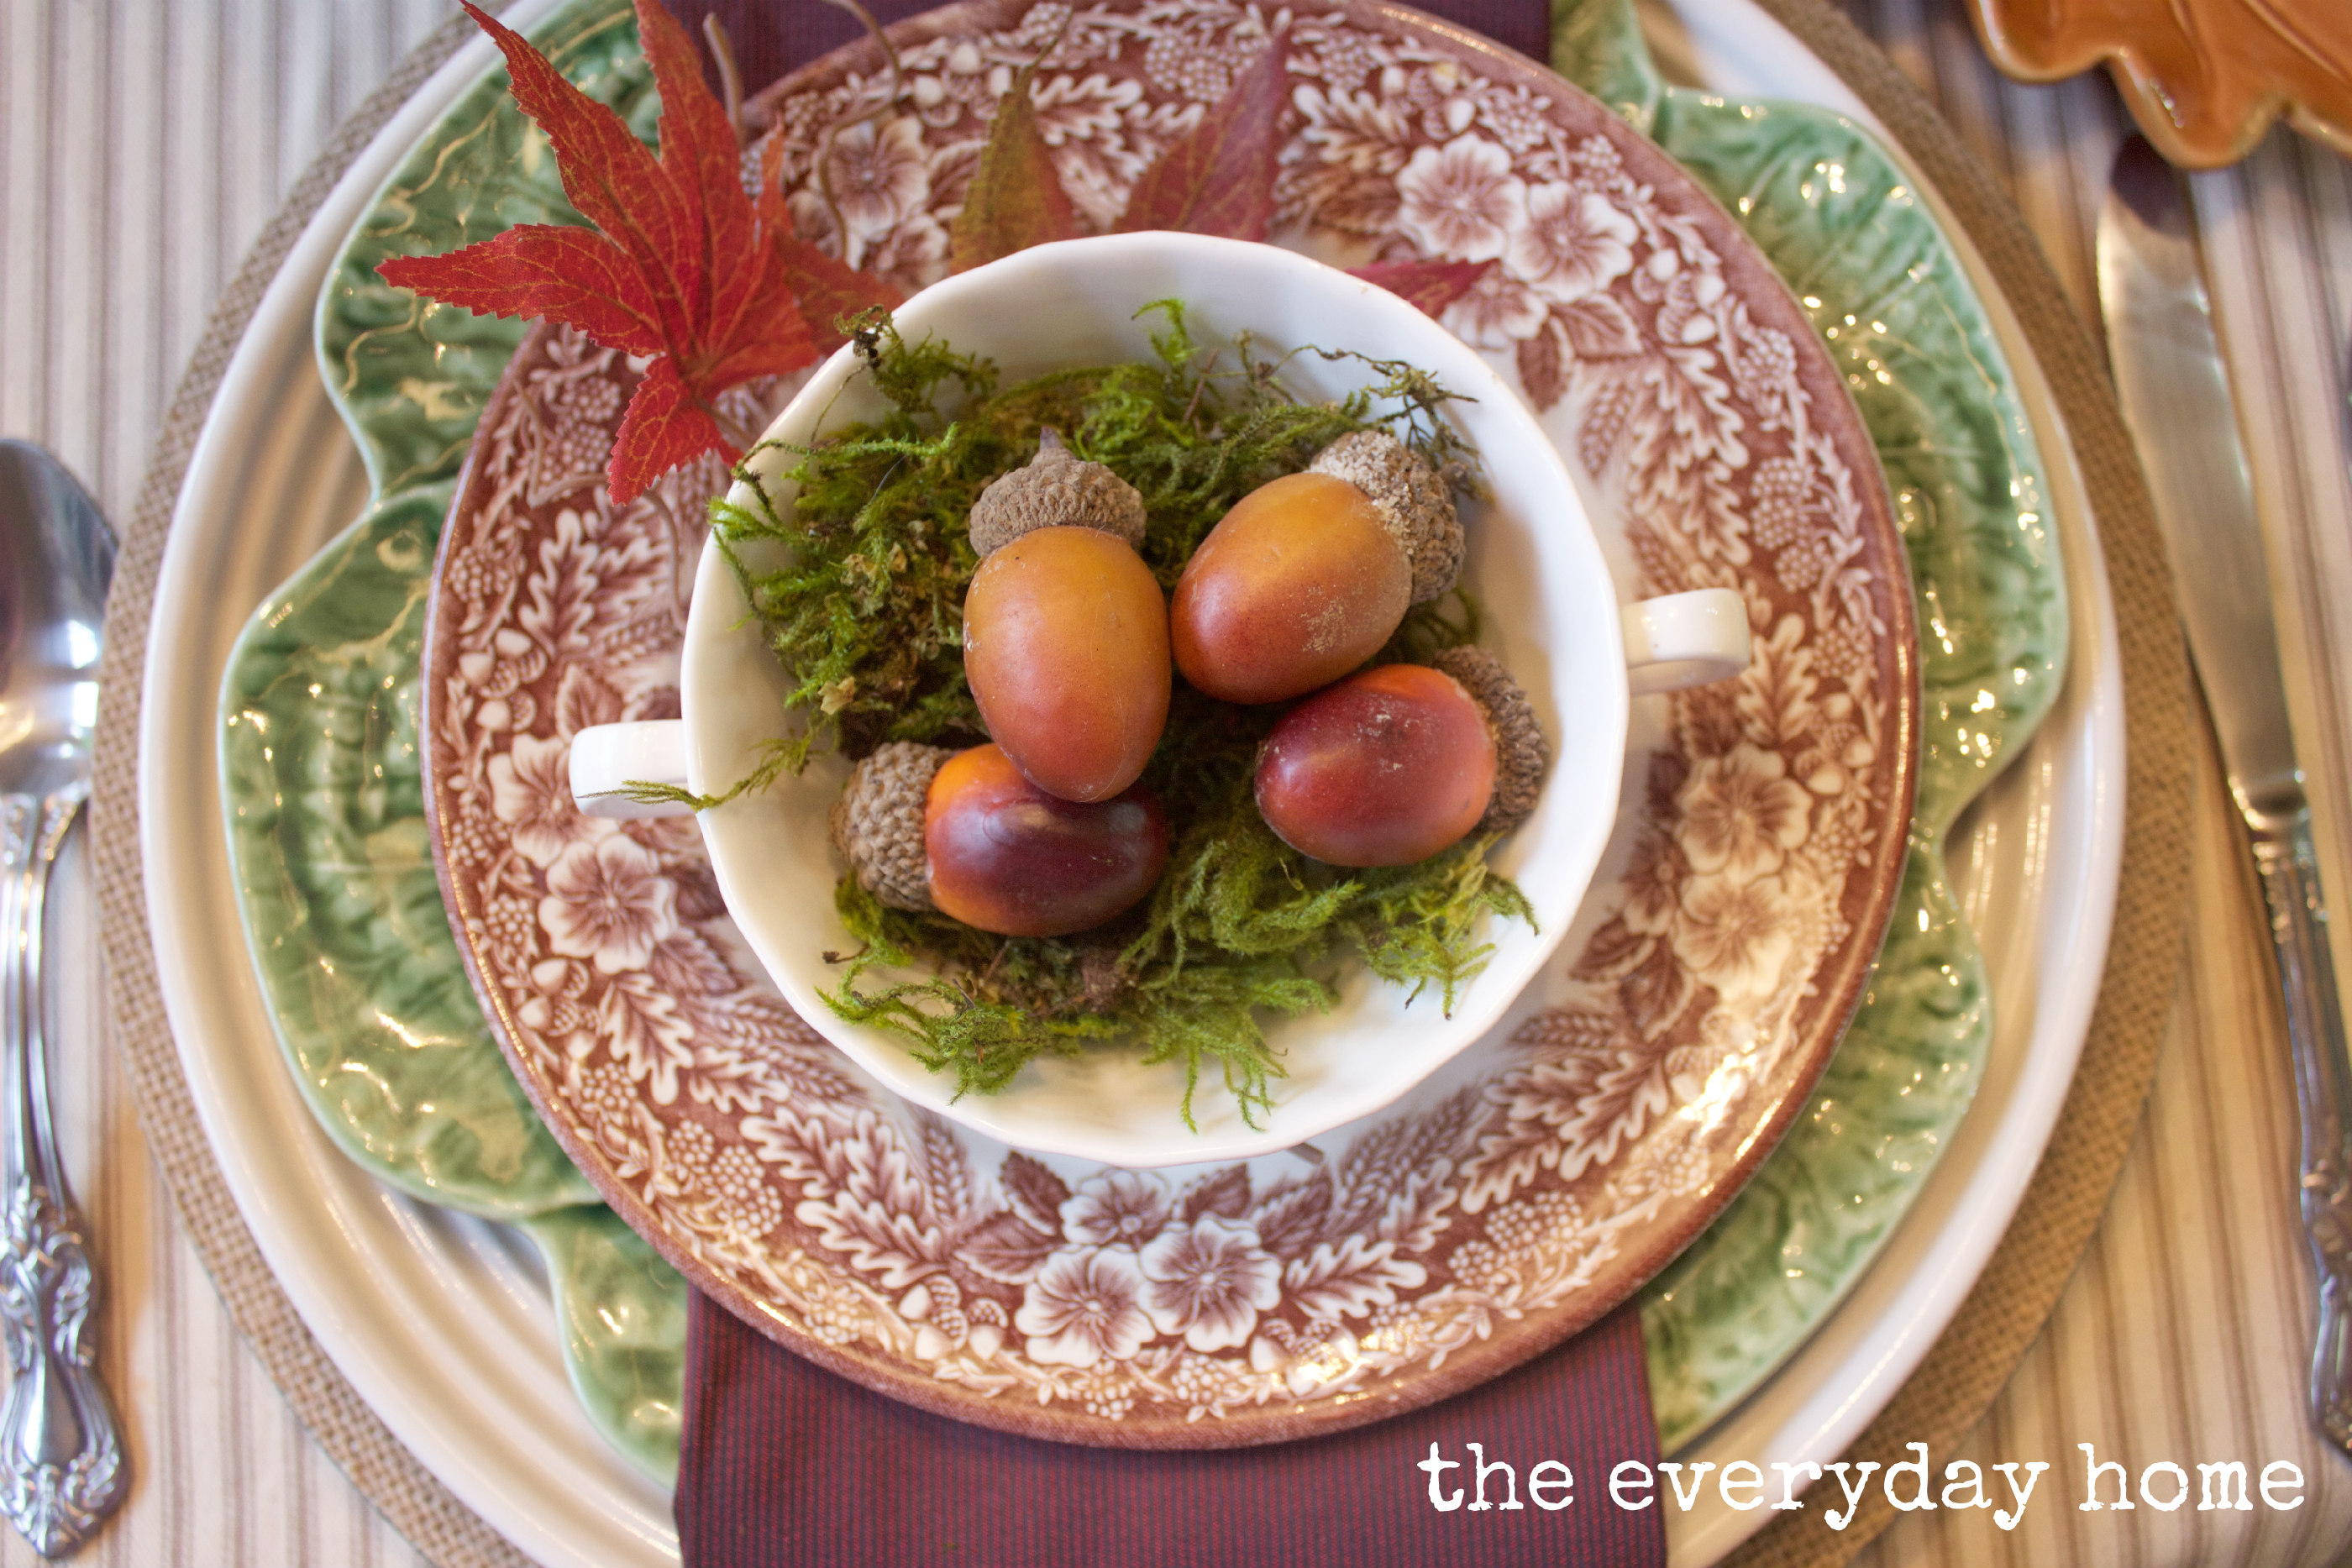 Esy Fall Placesetting The Everyday Home www.everydayhomeblog.com